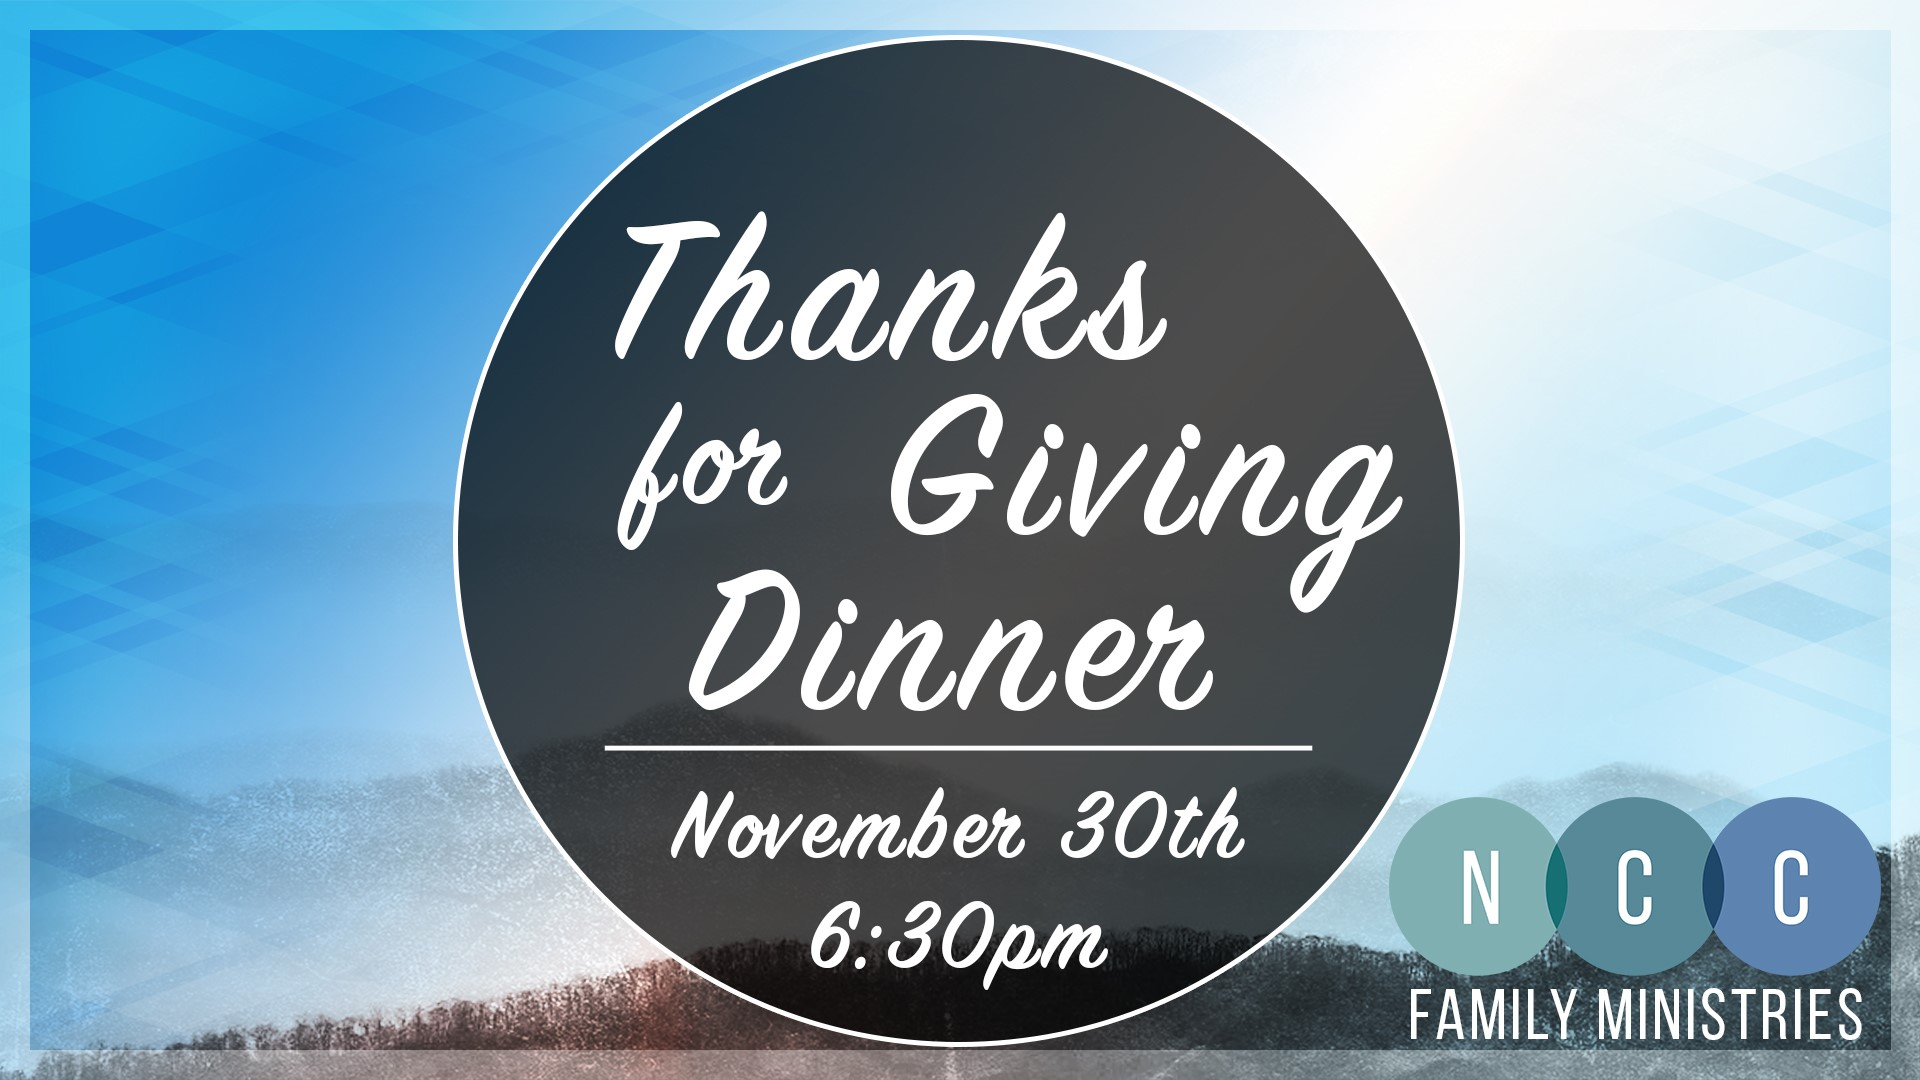 Thanks For Giving Dinner at New Covenant Church, Clyde, North Carolina